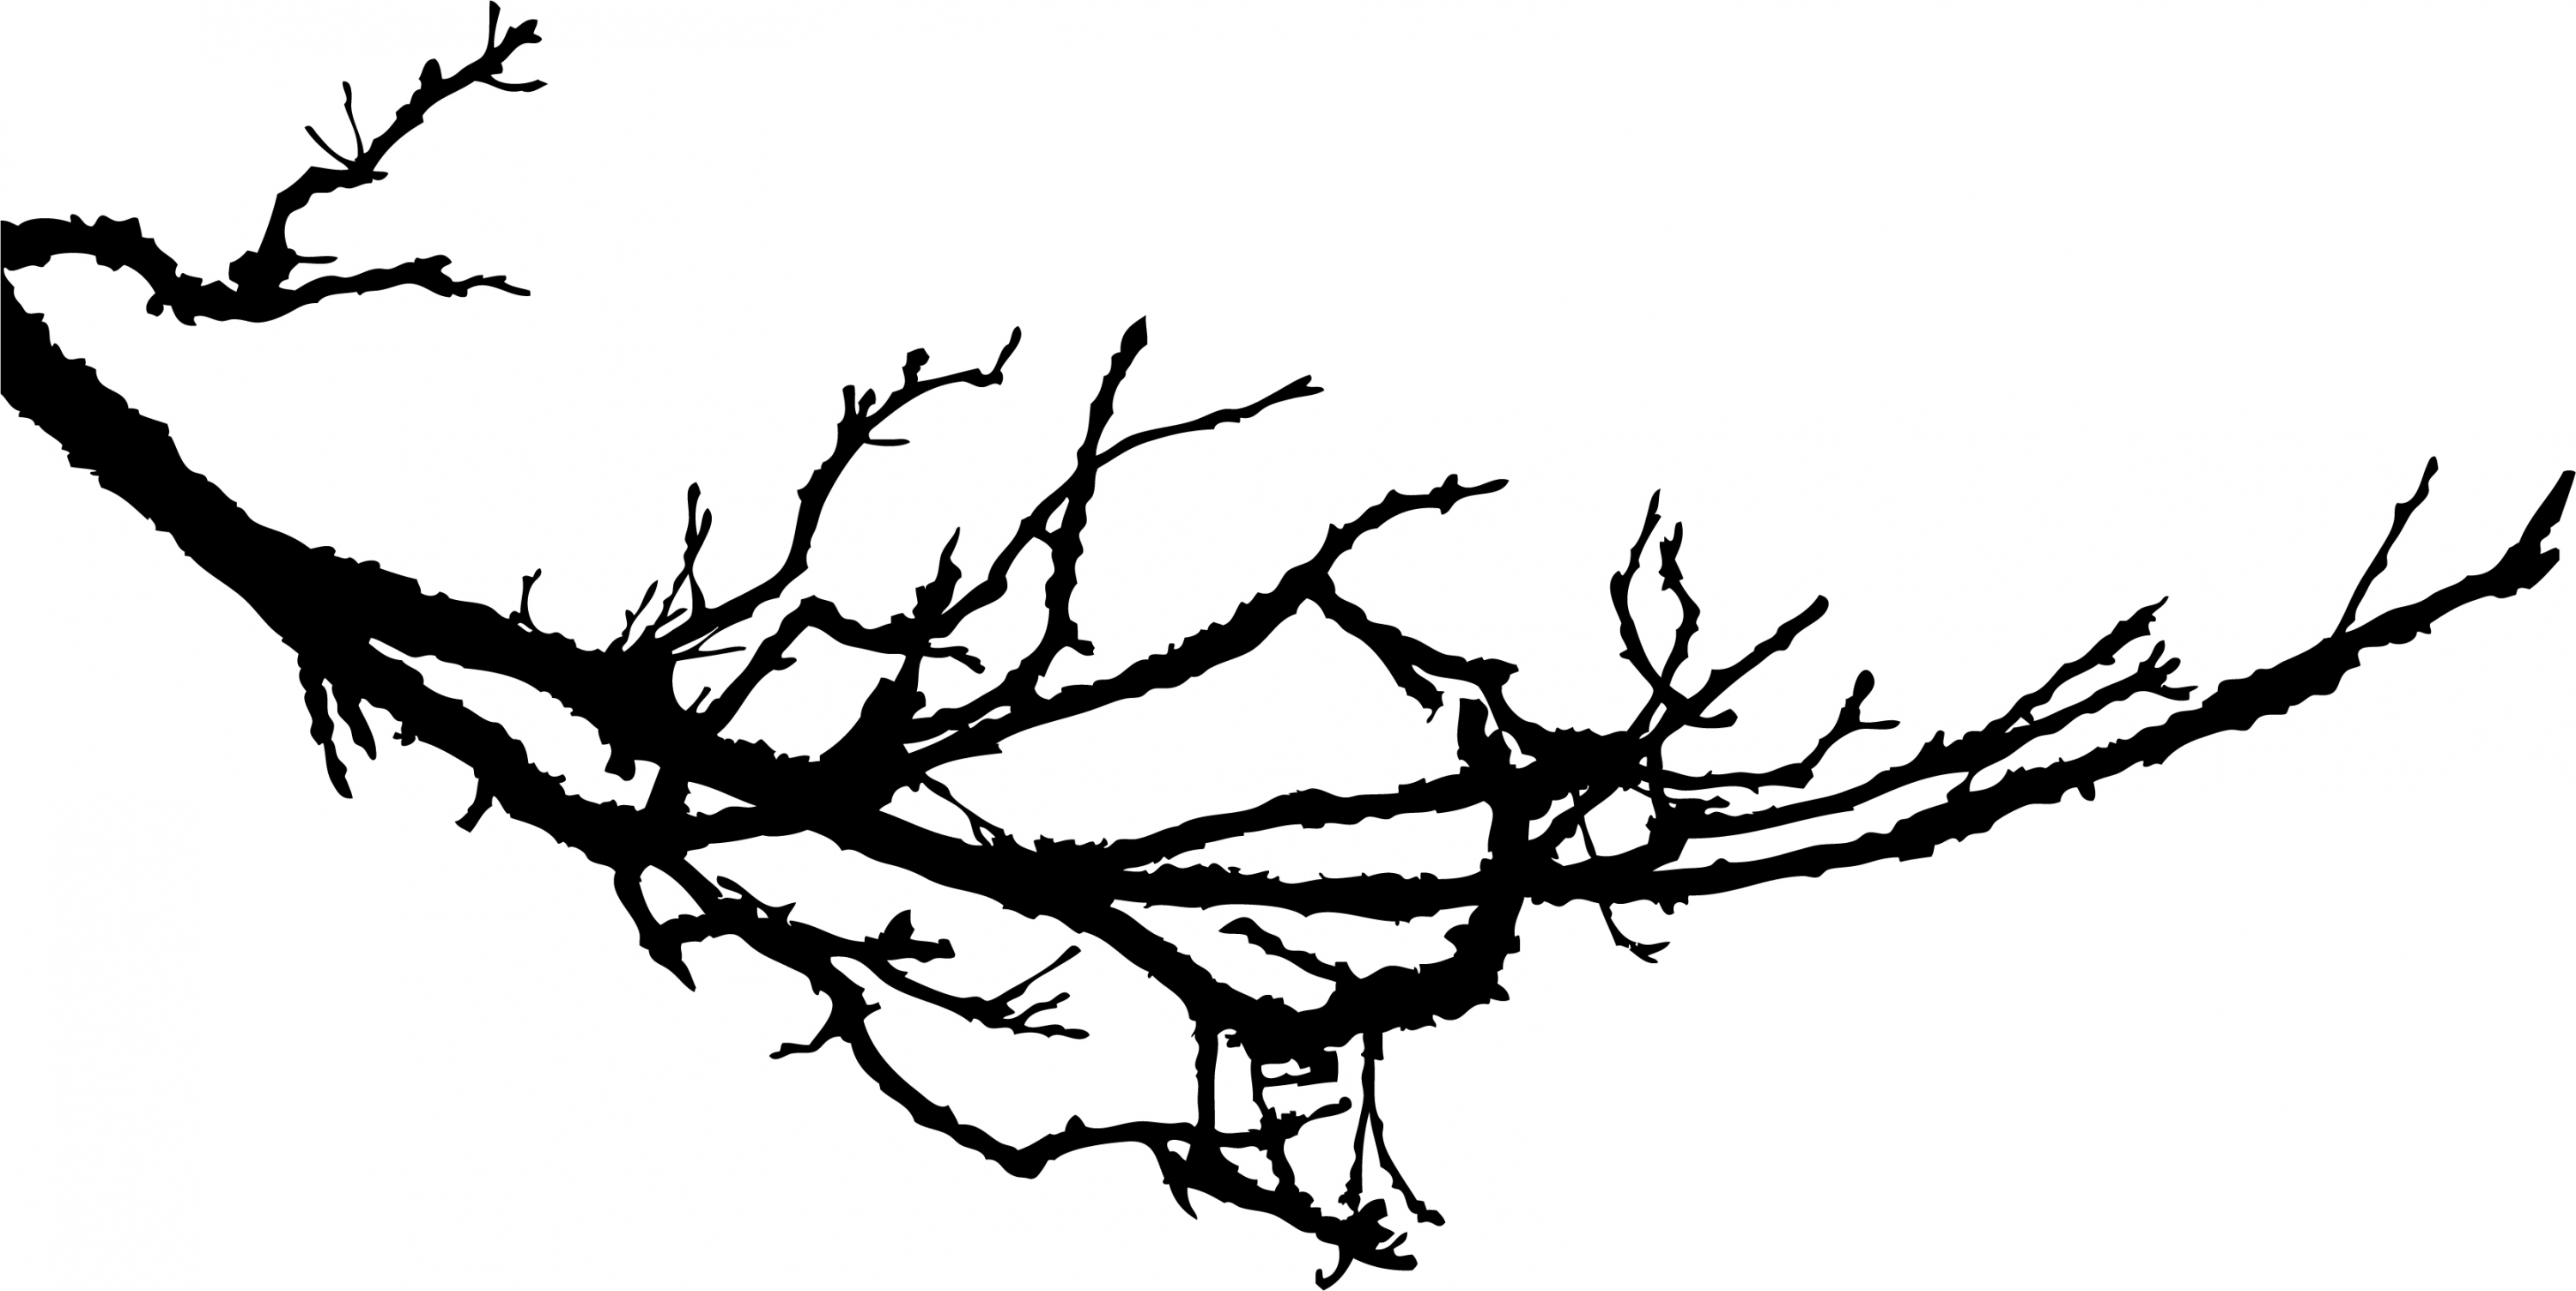 Picture Of A Tree Branch